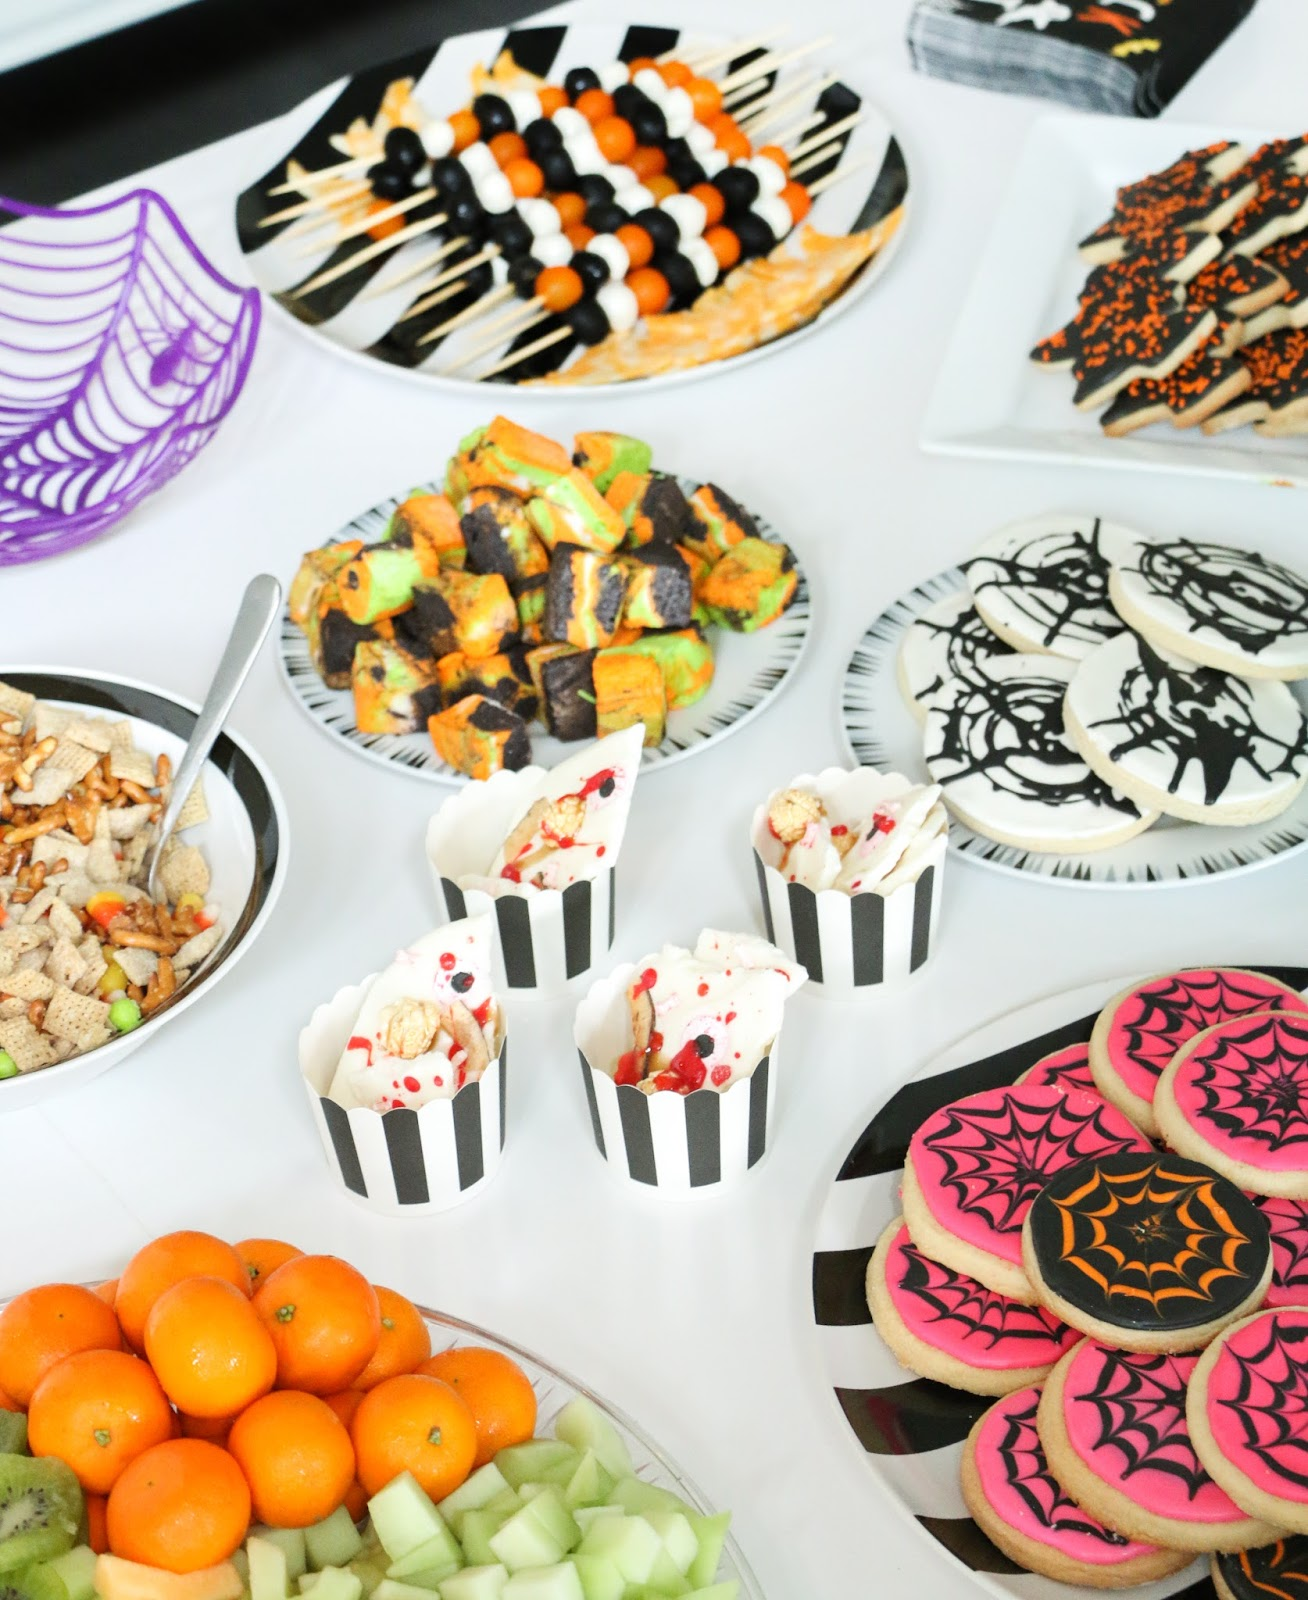 A Kailo Chic Life: Halloween Party Recap - The Food